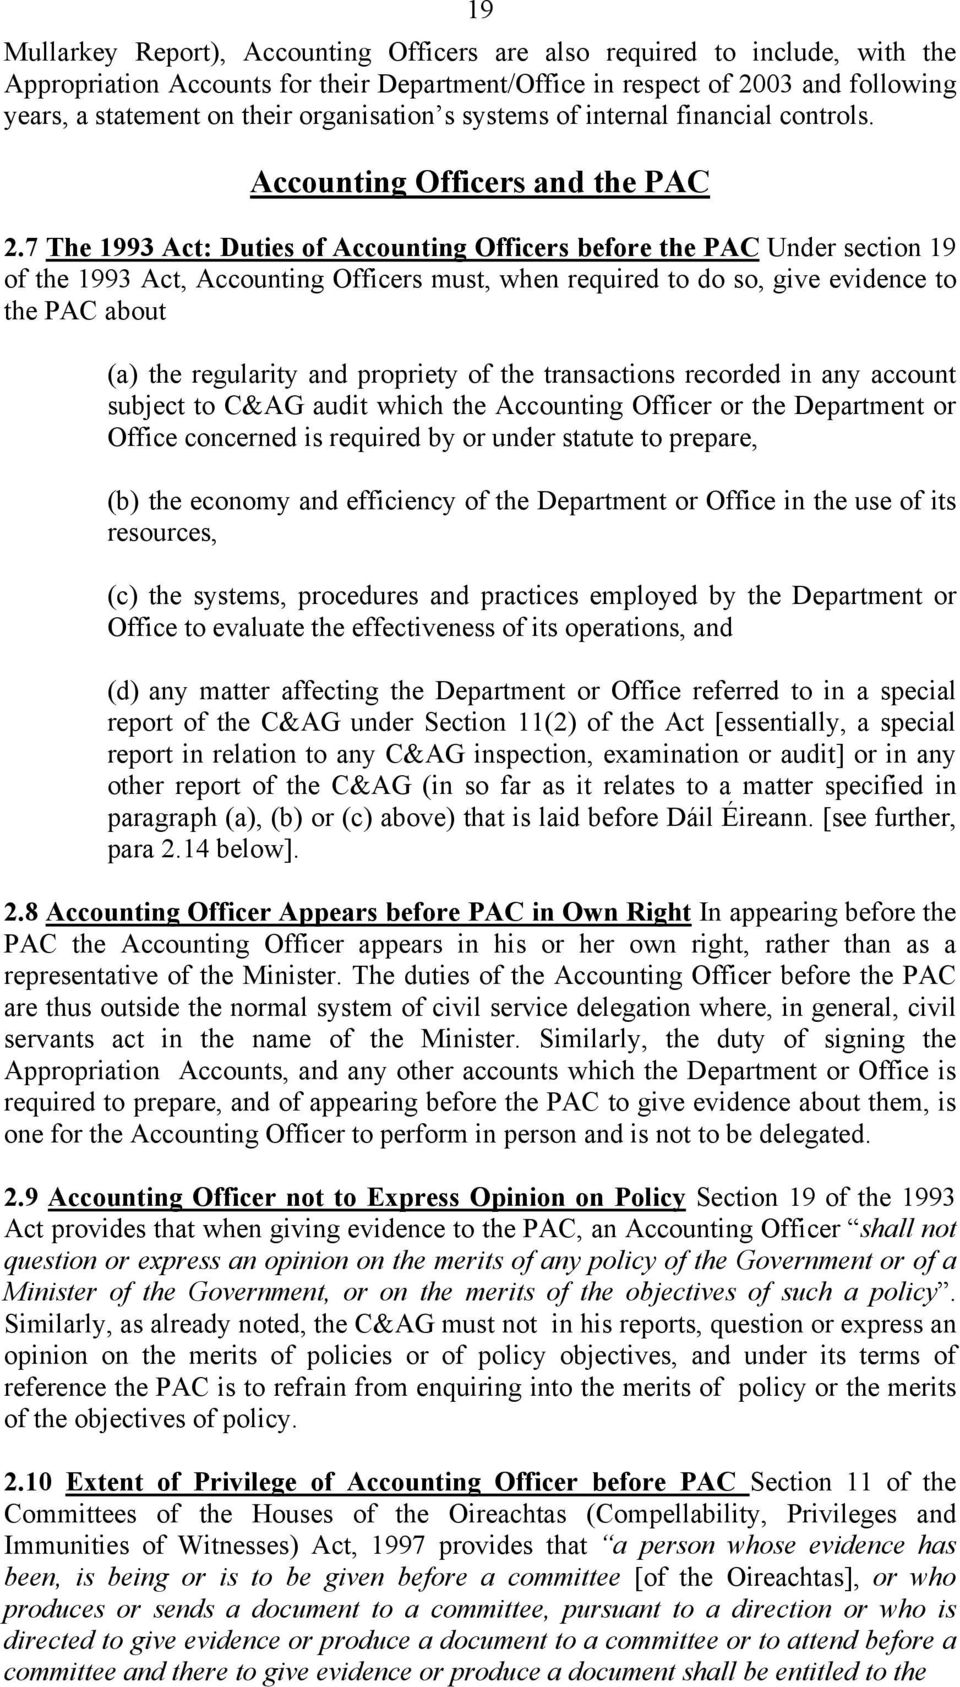 7 The 1993 Act: Duties of Accounting Officers before the PAC Under section 19 of the 1993 Act, Accounting Officers must, when required to do so, give evidence to the PAC about (a) the regularity and